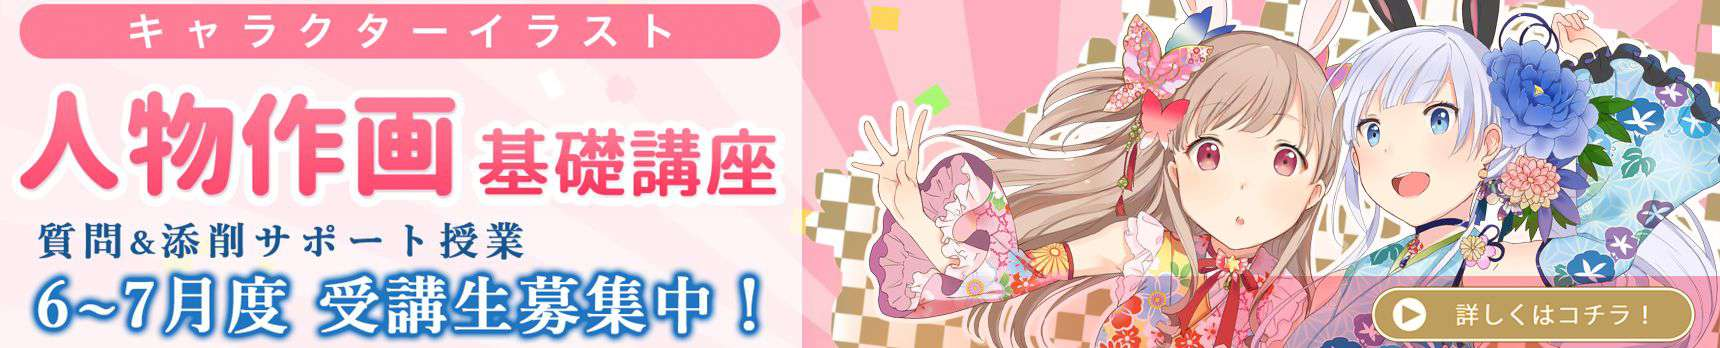 Ume support banner pc